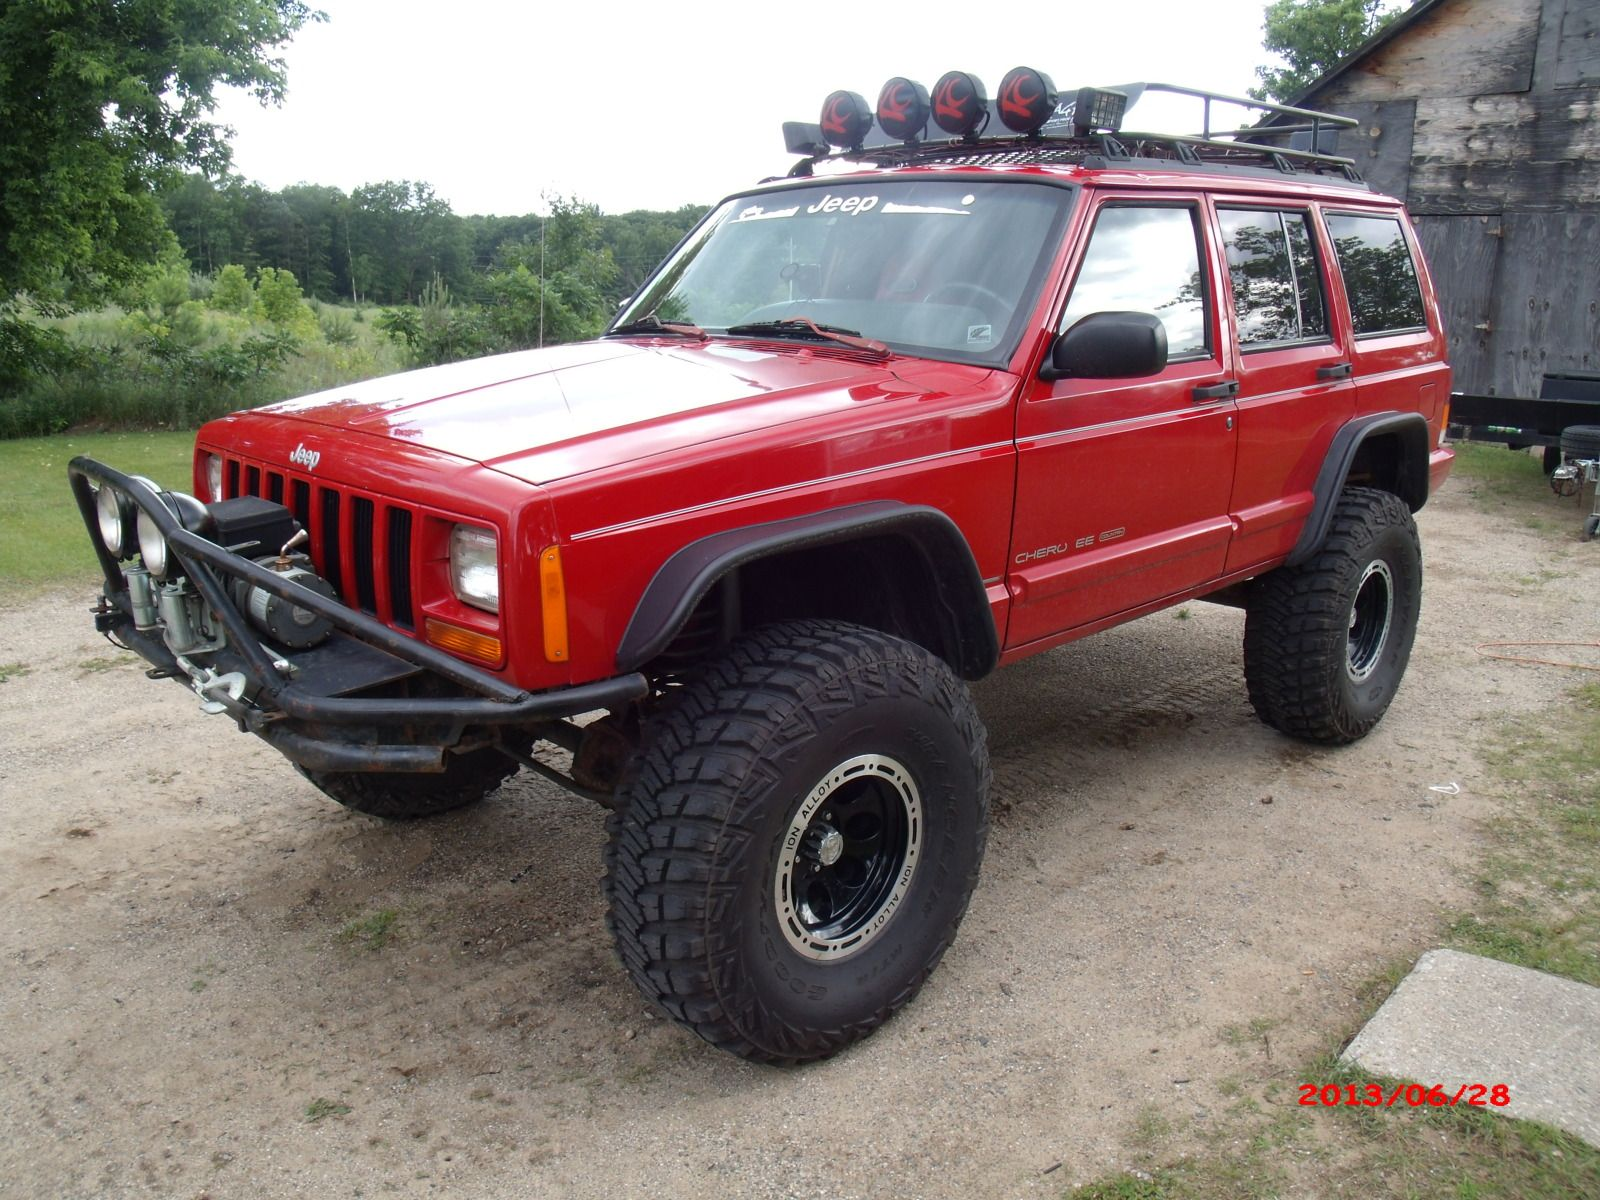 migrated over from yj to xj - jeep cherokee forum | jeep xj